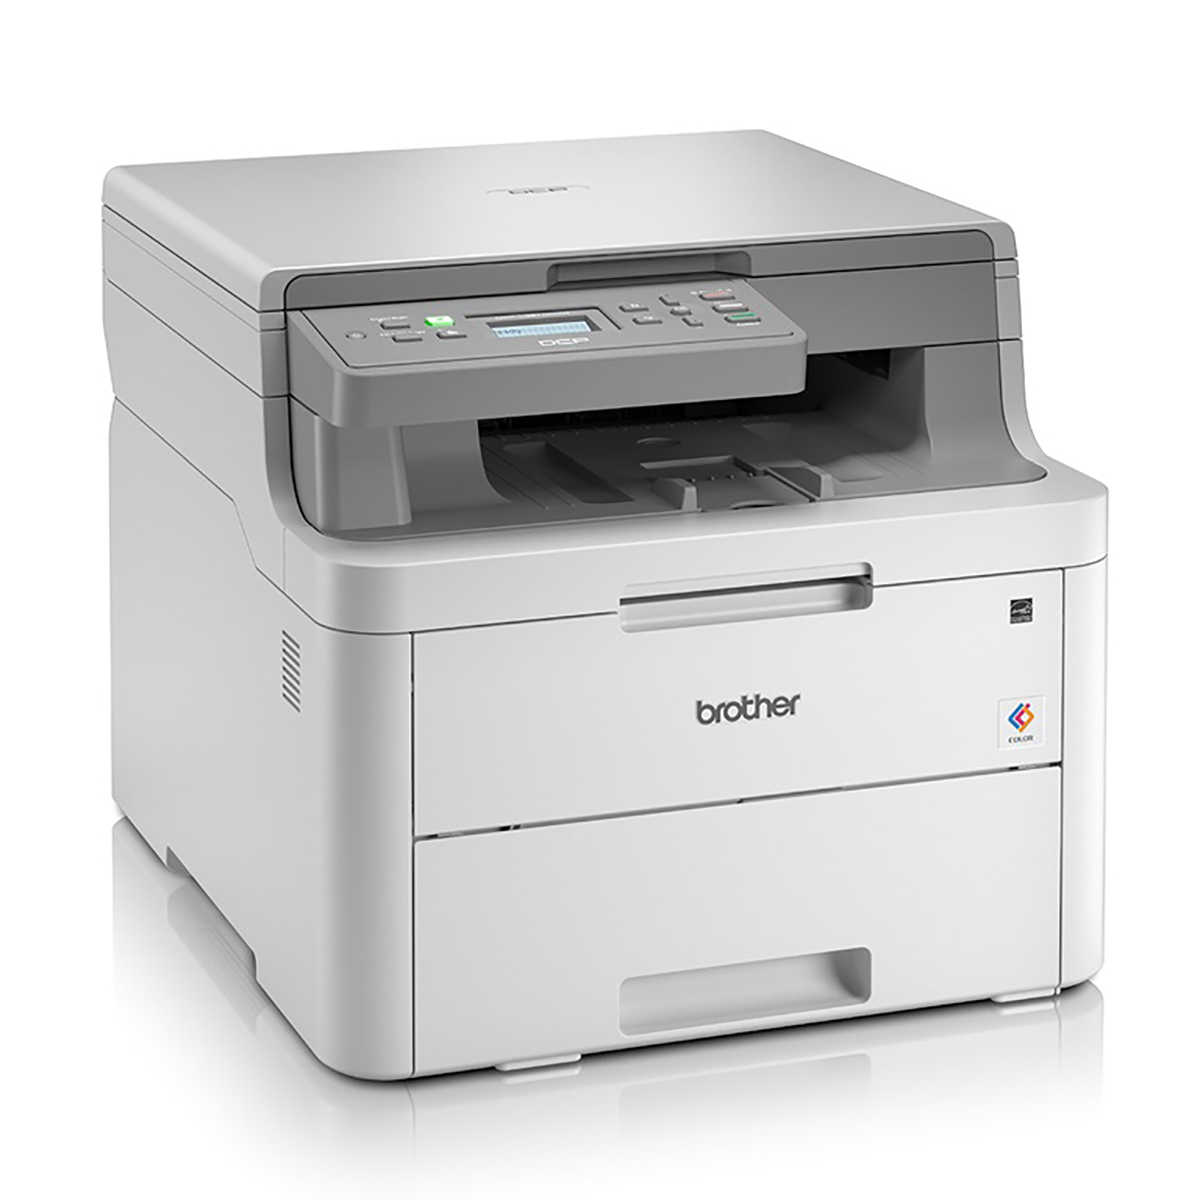 Brother DCP-L3510CDW Multifunction Color Laser Printer